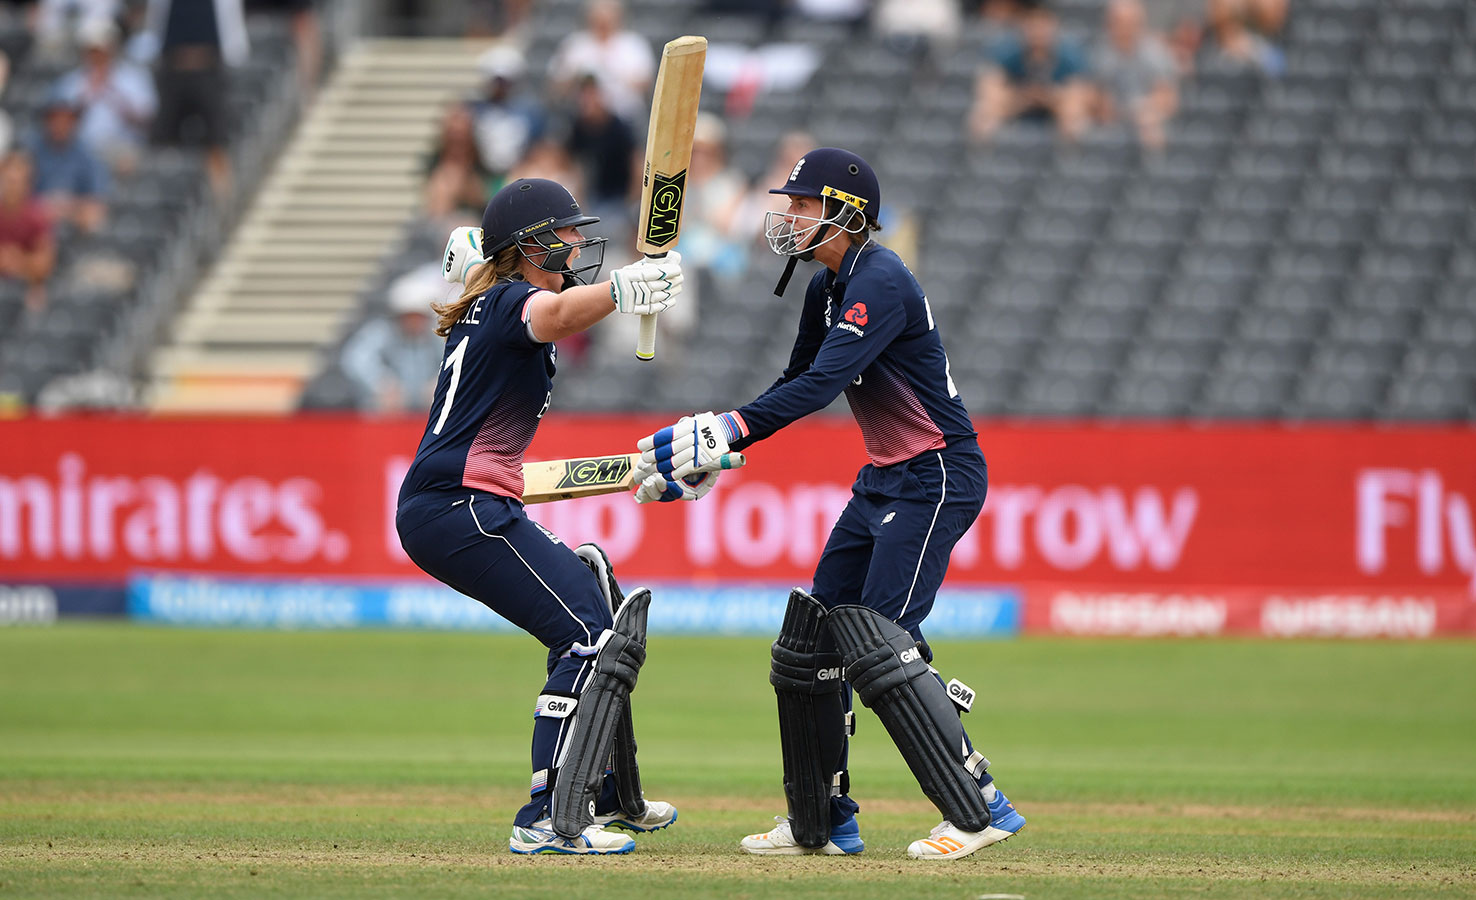 Anya Shrubsole and Jenny Gunn carried England into the final in a tense last-over finish at Bristol